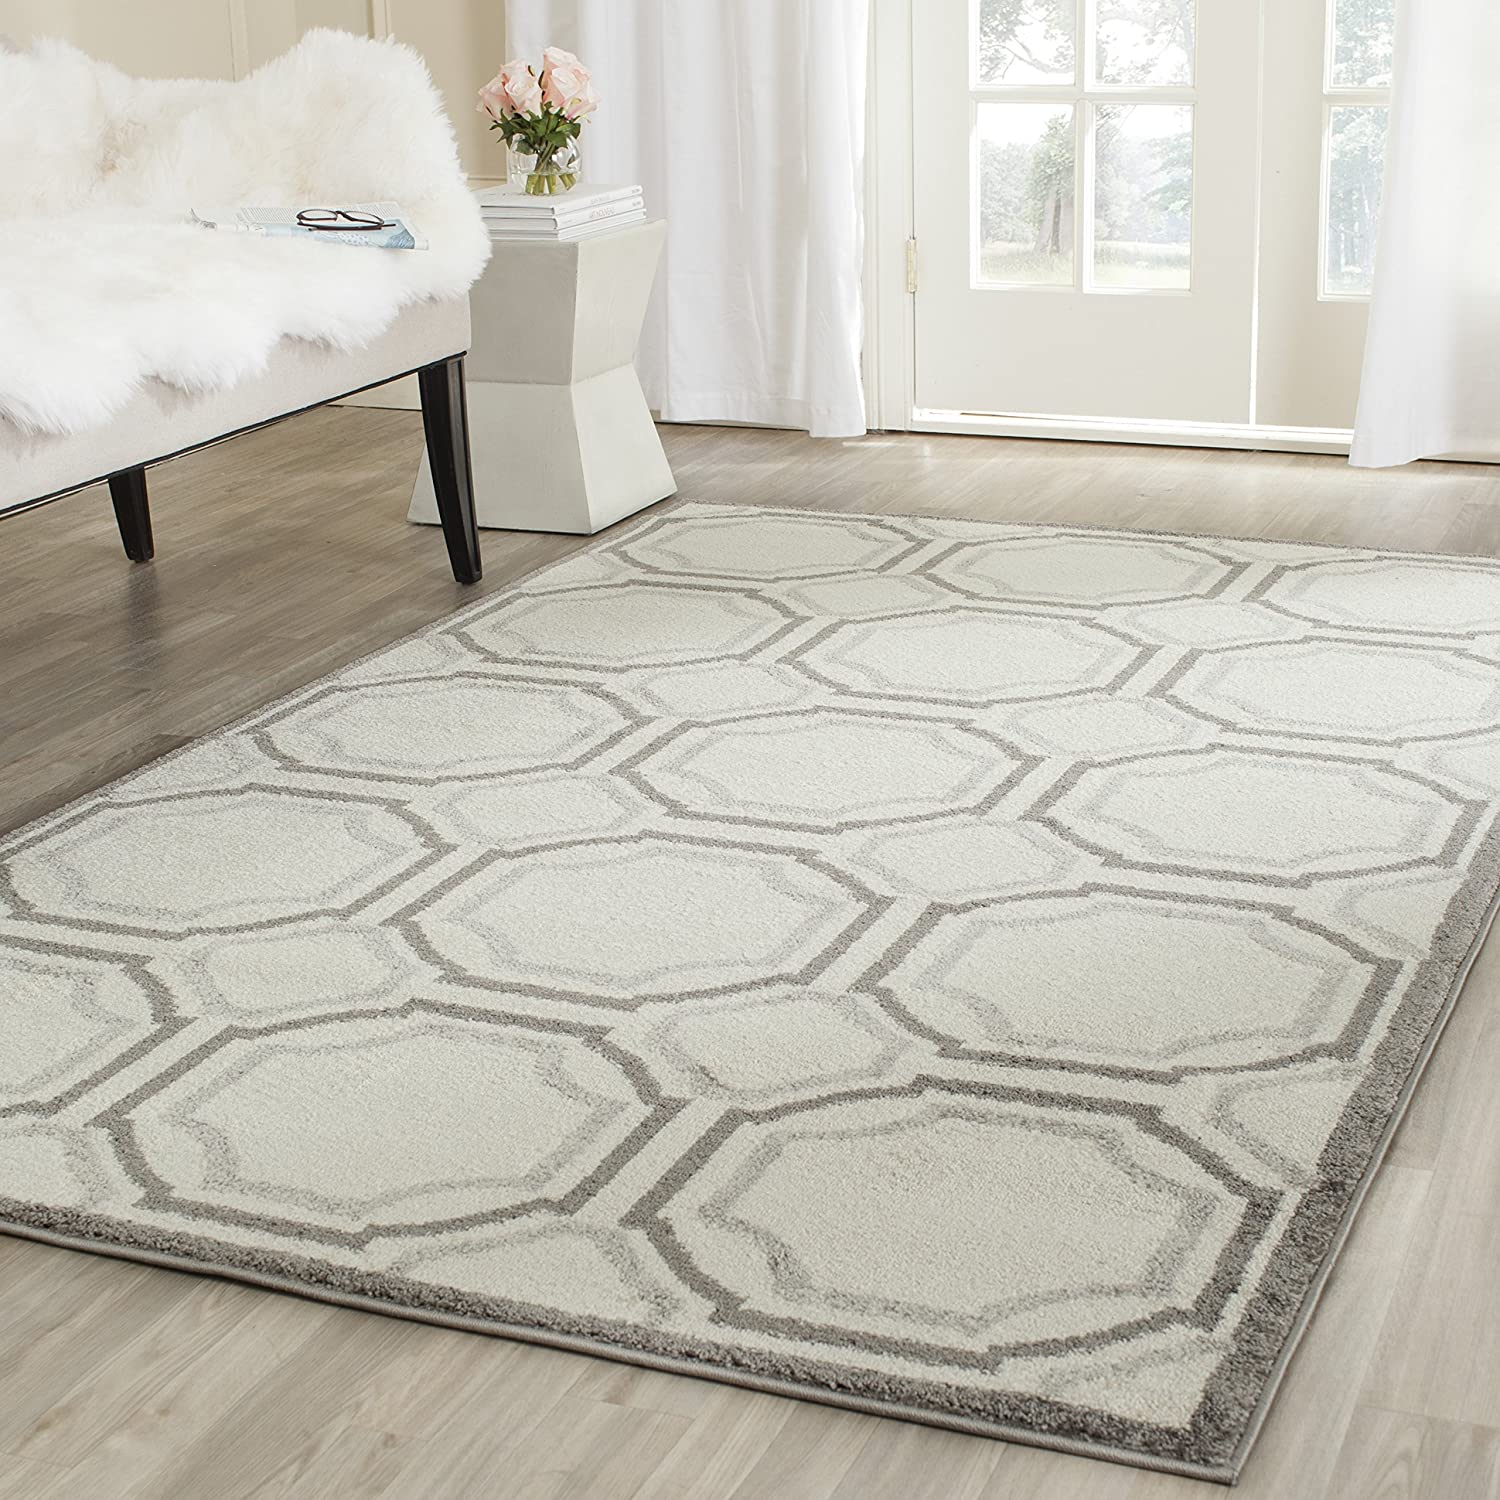 your x ideas exteriors is entryway marvelous floor sea magnificent accessories cozy star ft washable rugs interior nautical for area rug full